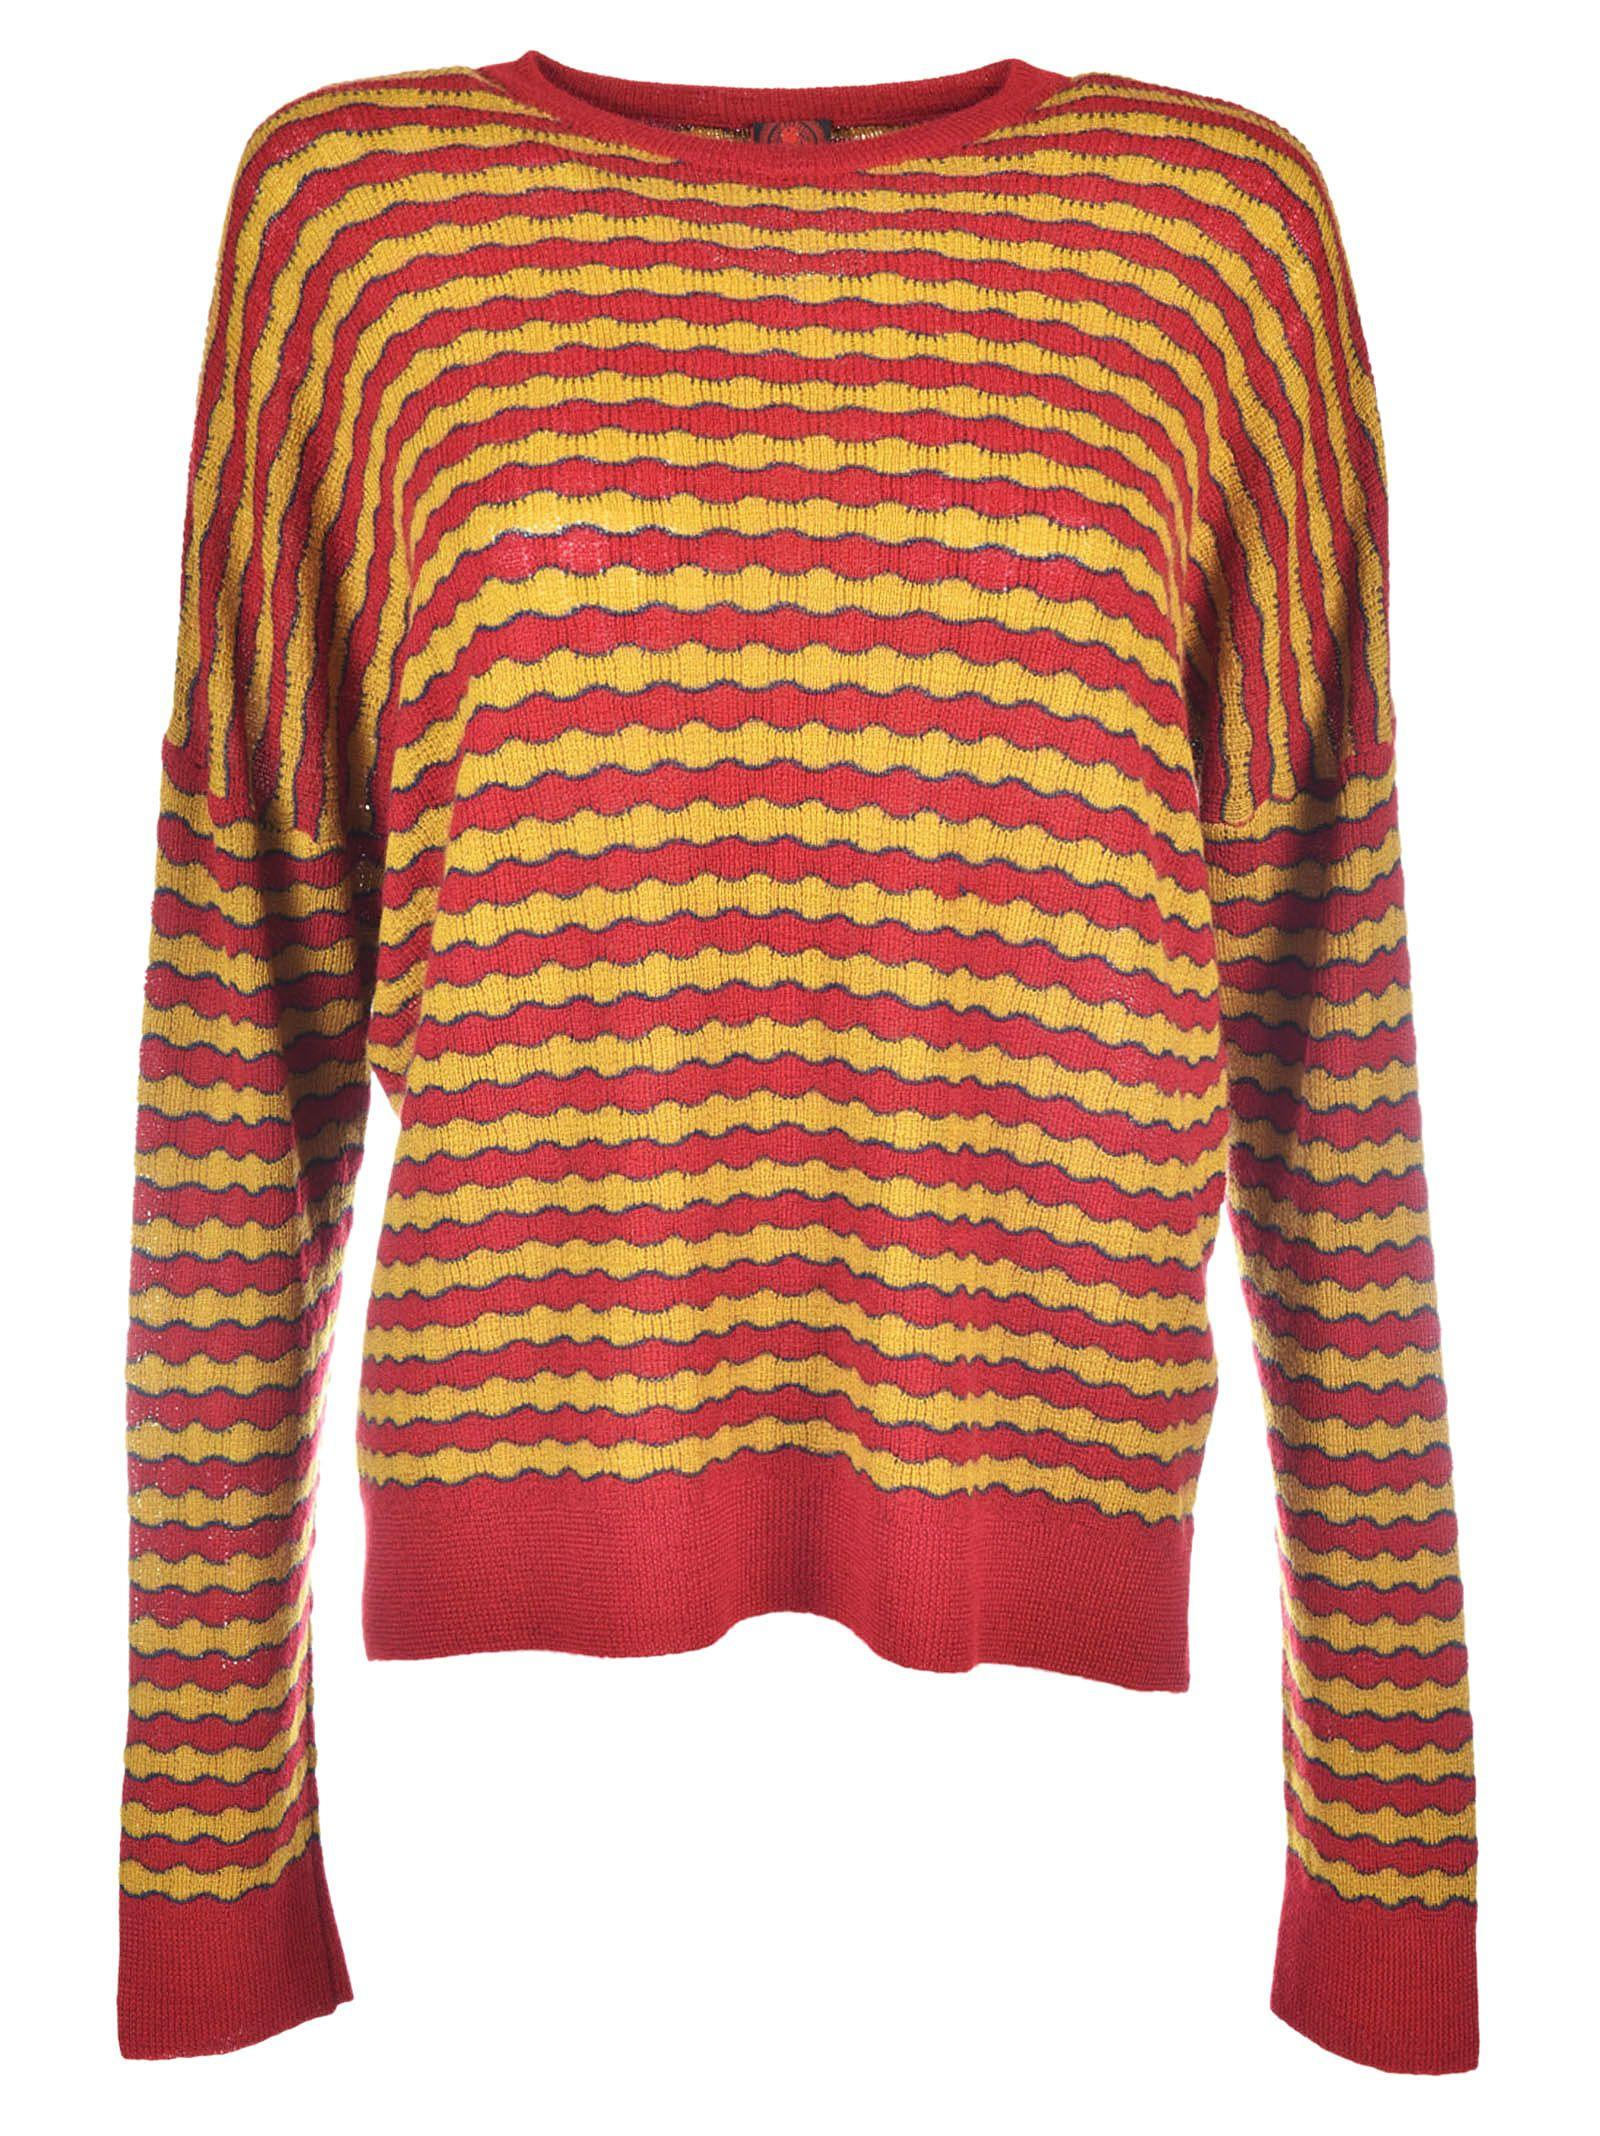 Cashmere Sweater Cashmere Yellow Cashmere In Red In Red Yellow Sweater UpSMGqzV